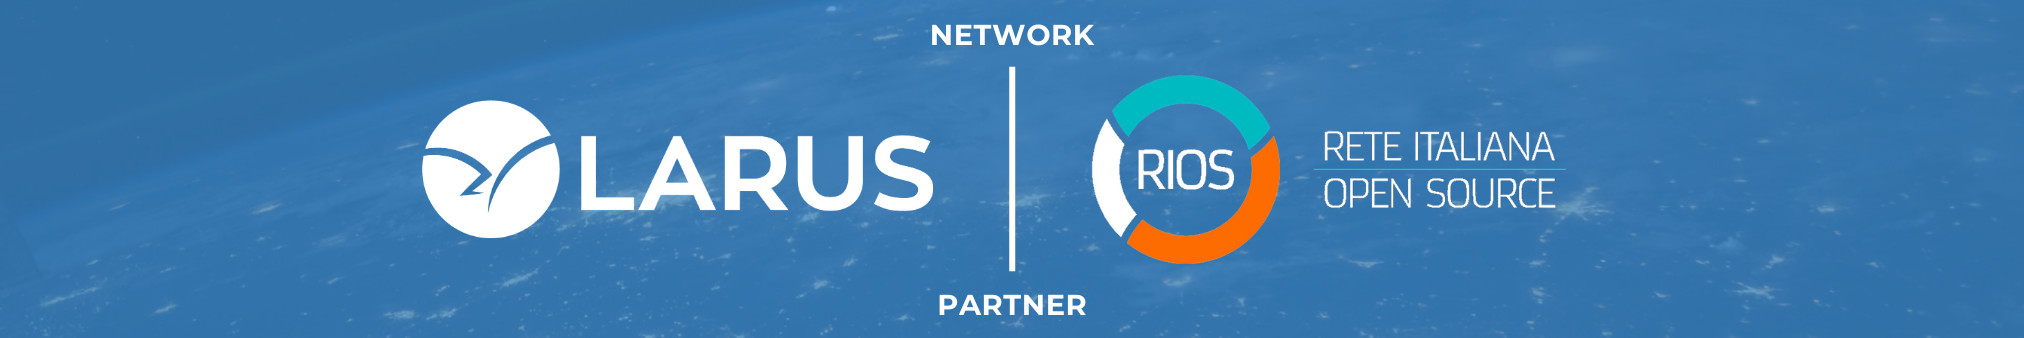 banner - rios - networkpartner